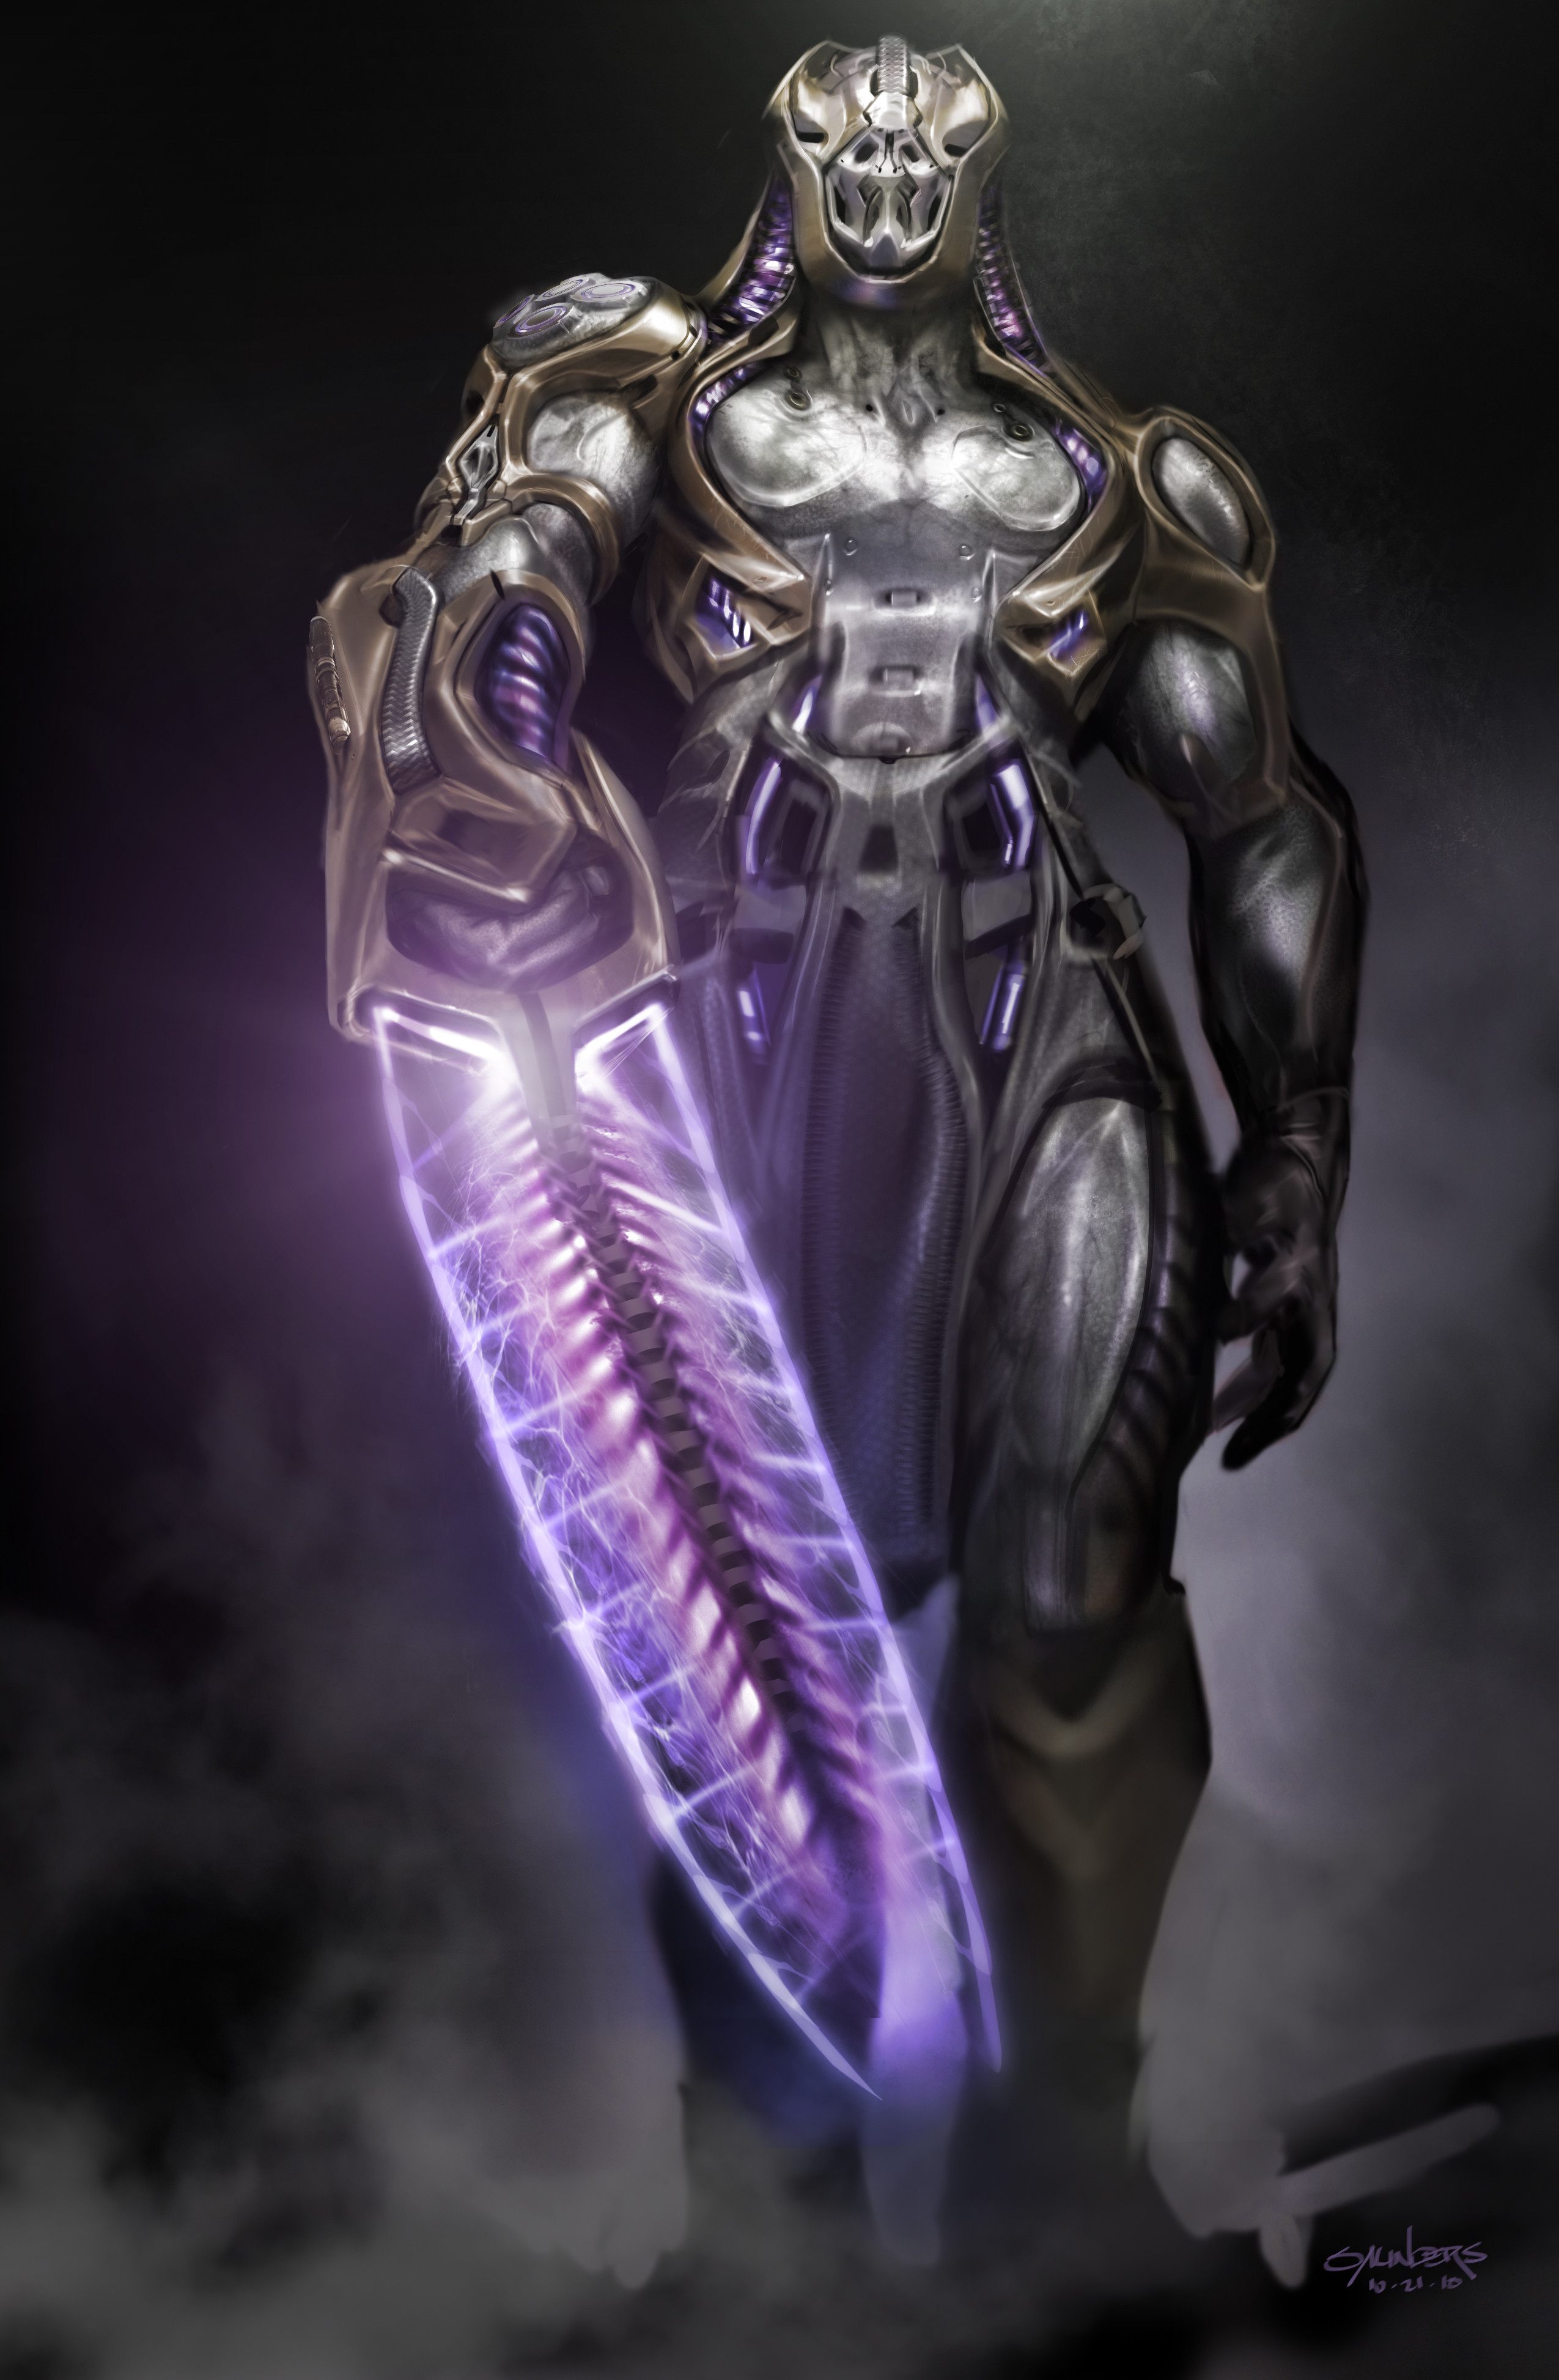 A Chitauri captain concept. Trying for an energy-chainsaw style weapon.